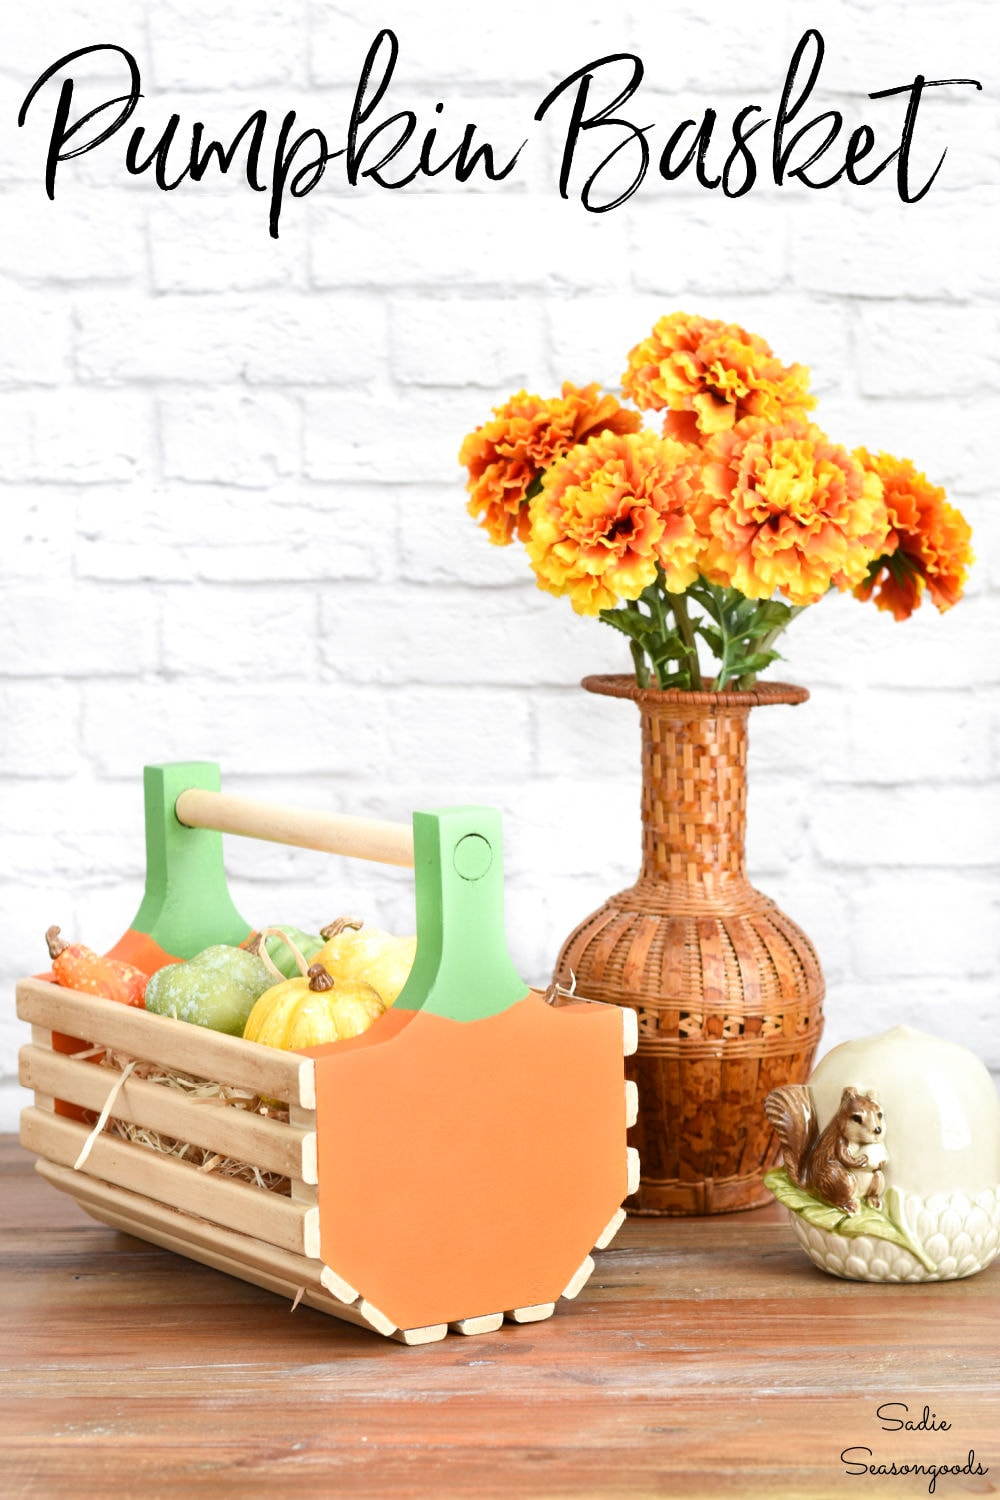 fall decor from a small wooden basket